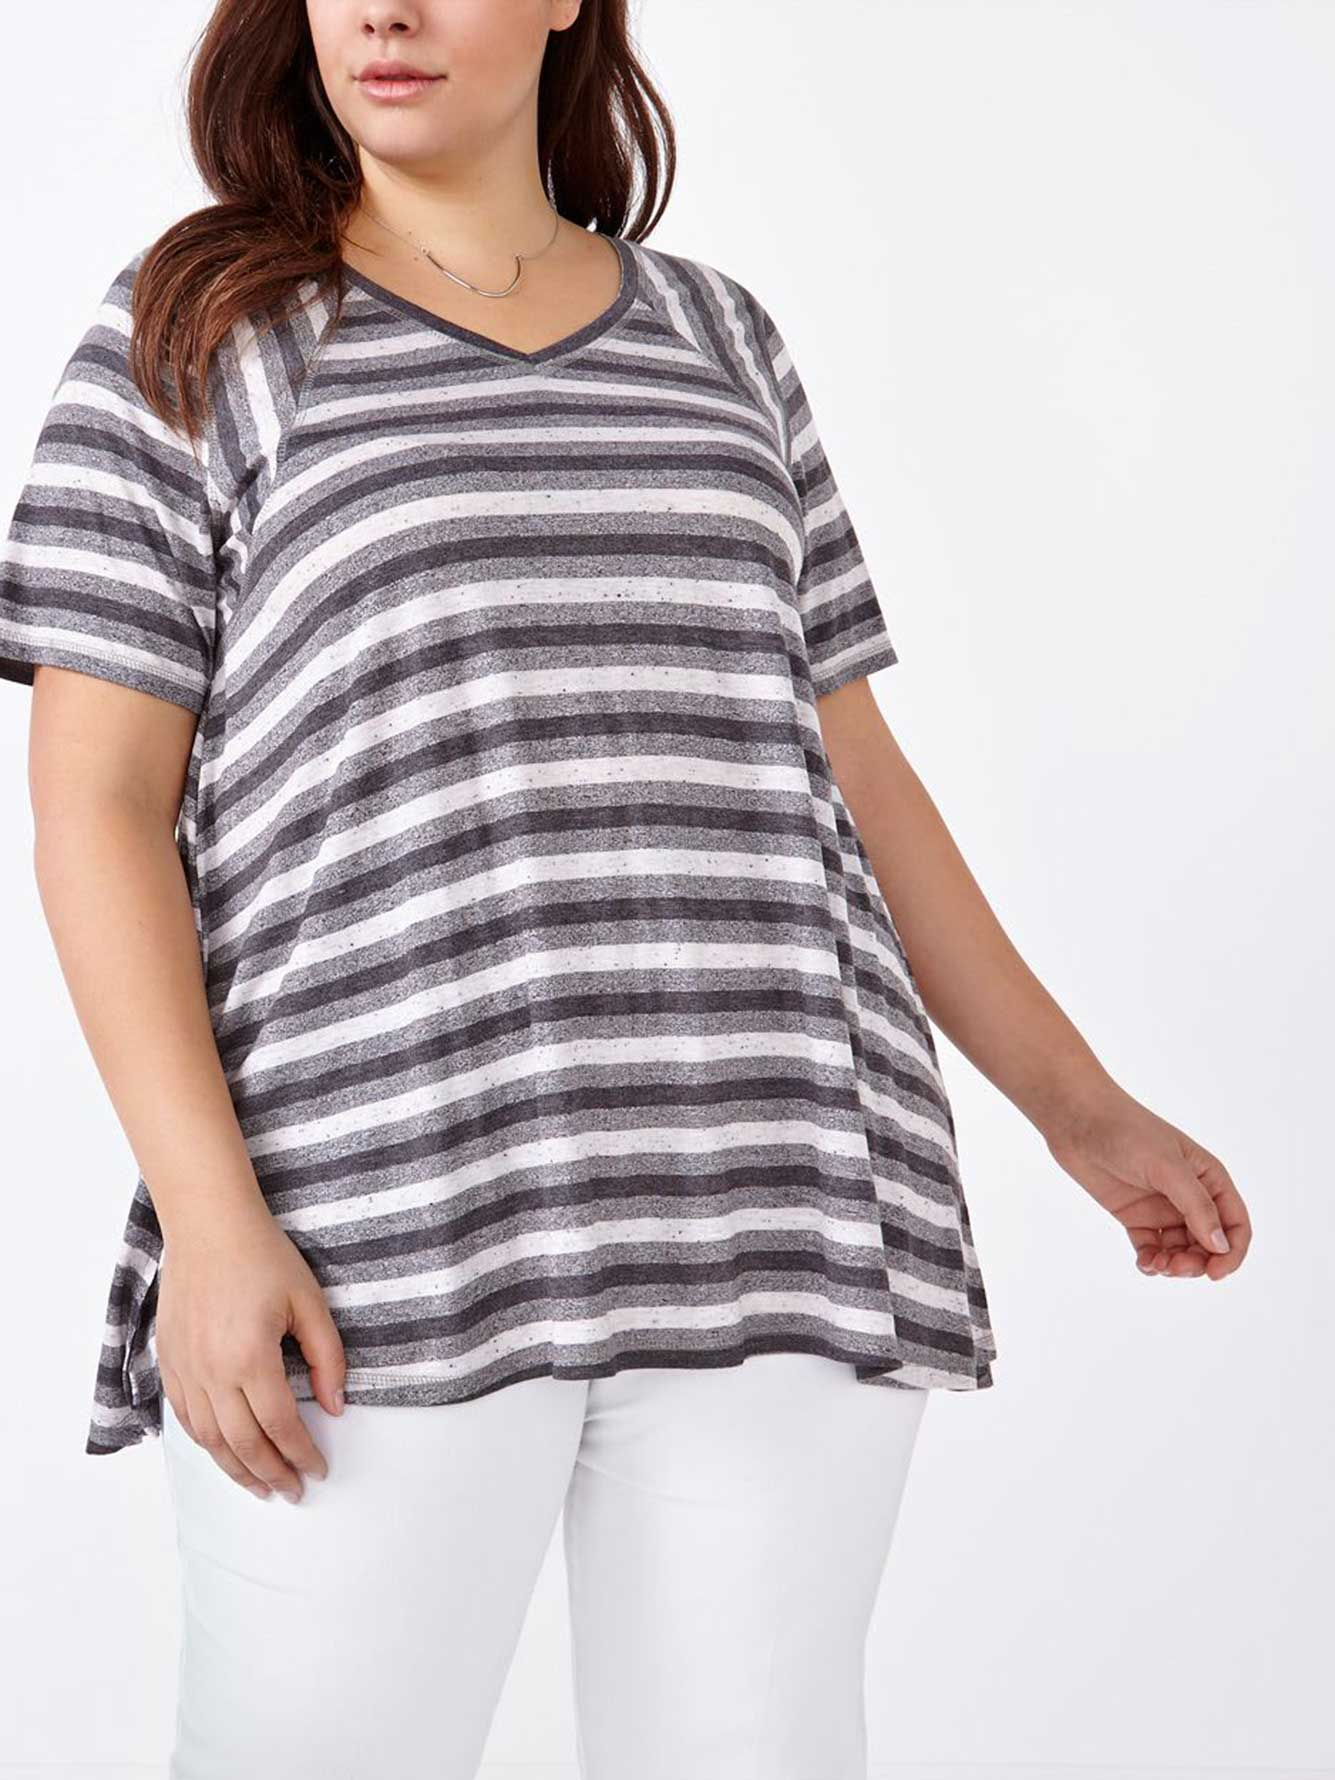 Relaxed fit striped t shirt penningtons for Relaxed fit t shirt